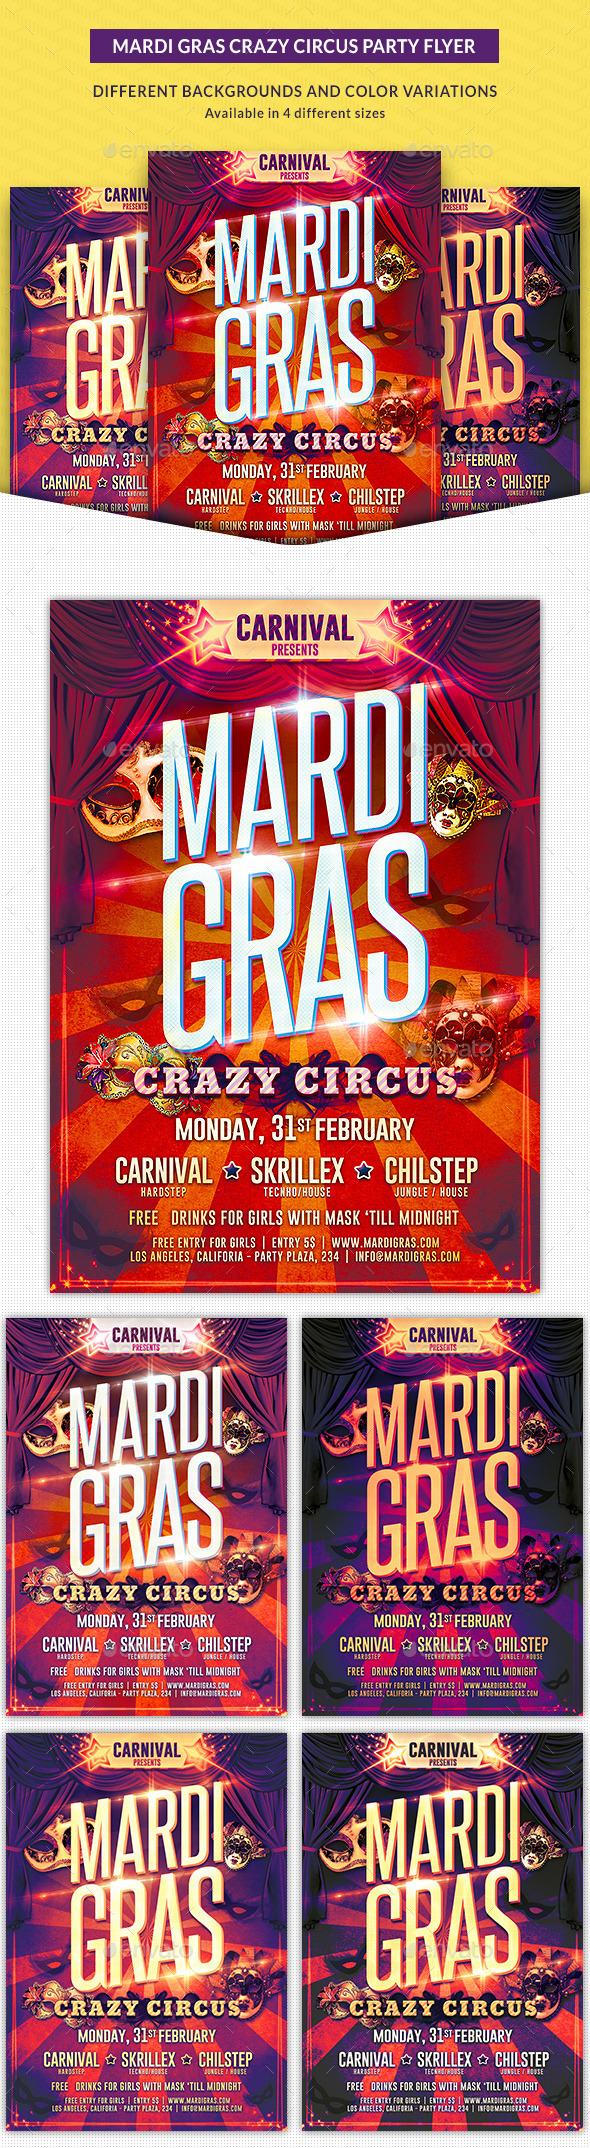 Mardi Gras Crazy Circus Party Flyer - Clubs & Parties Events